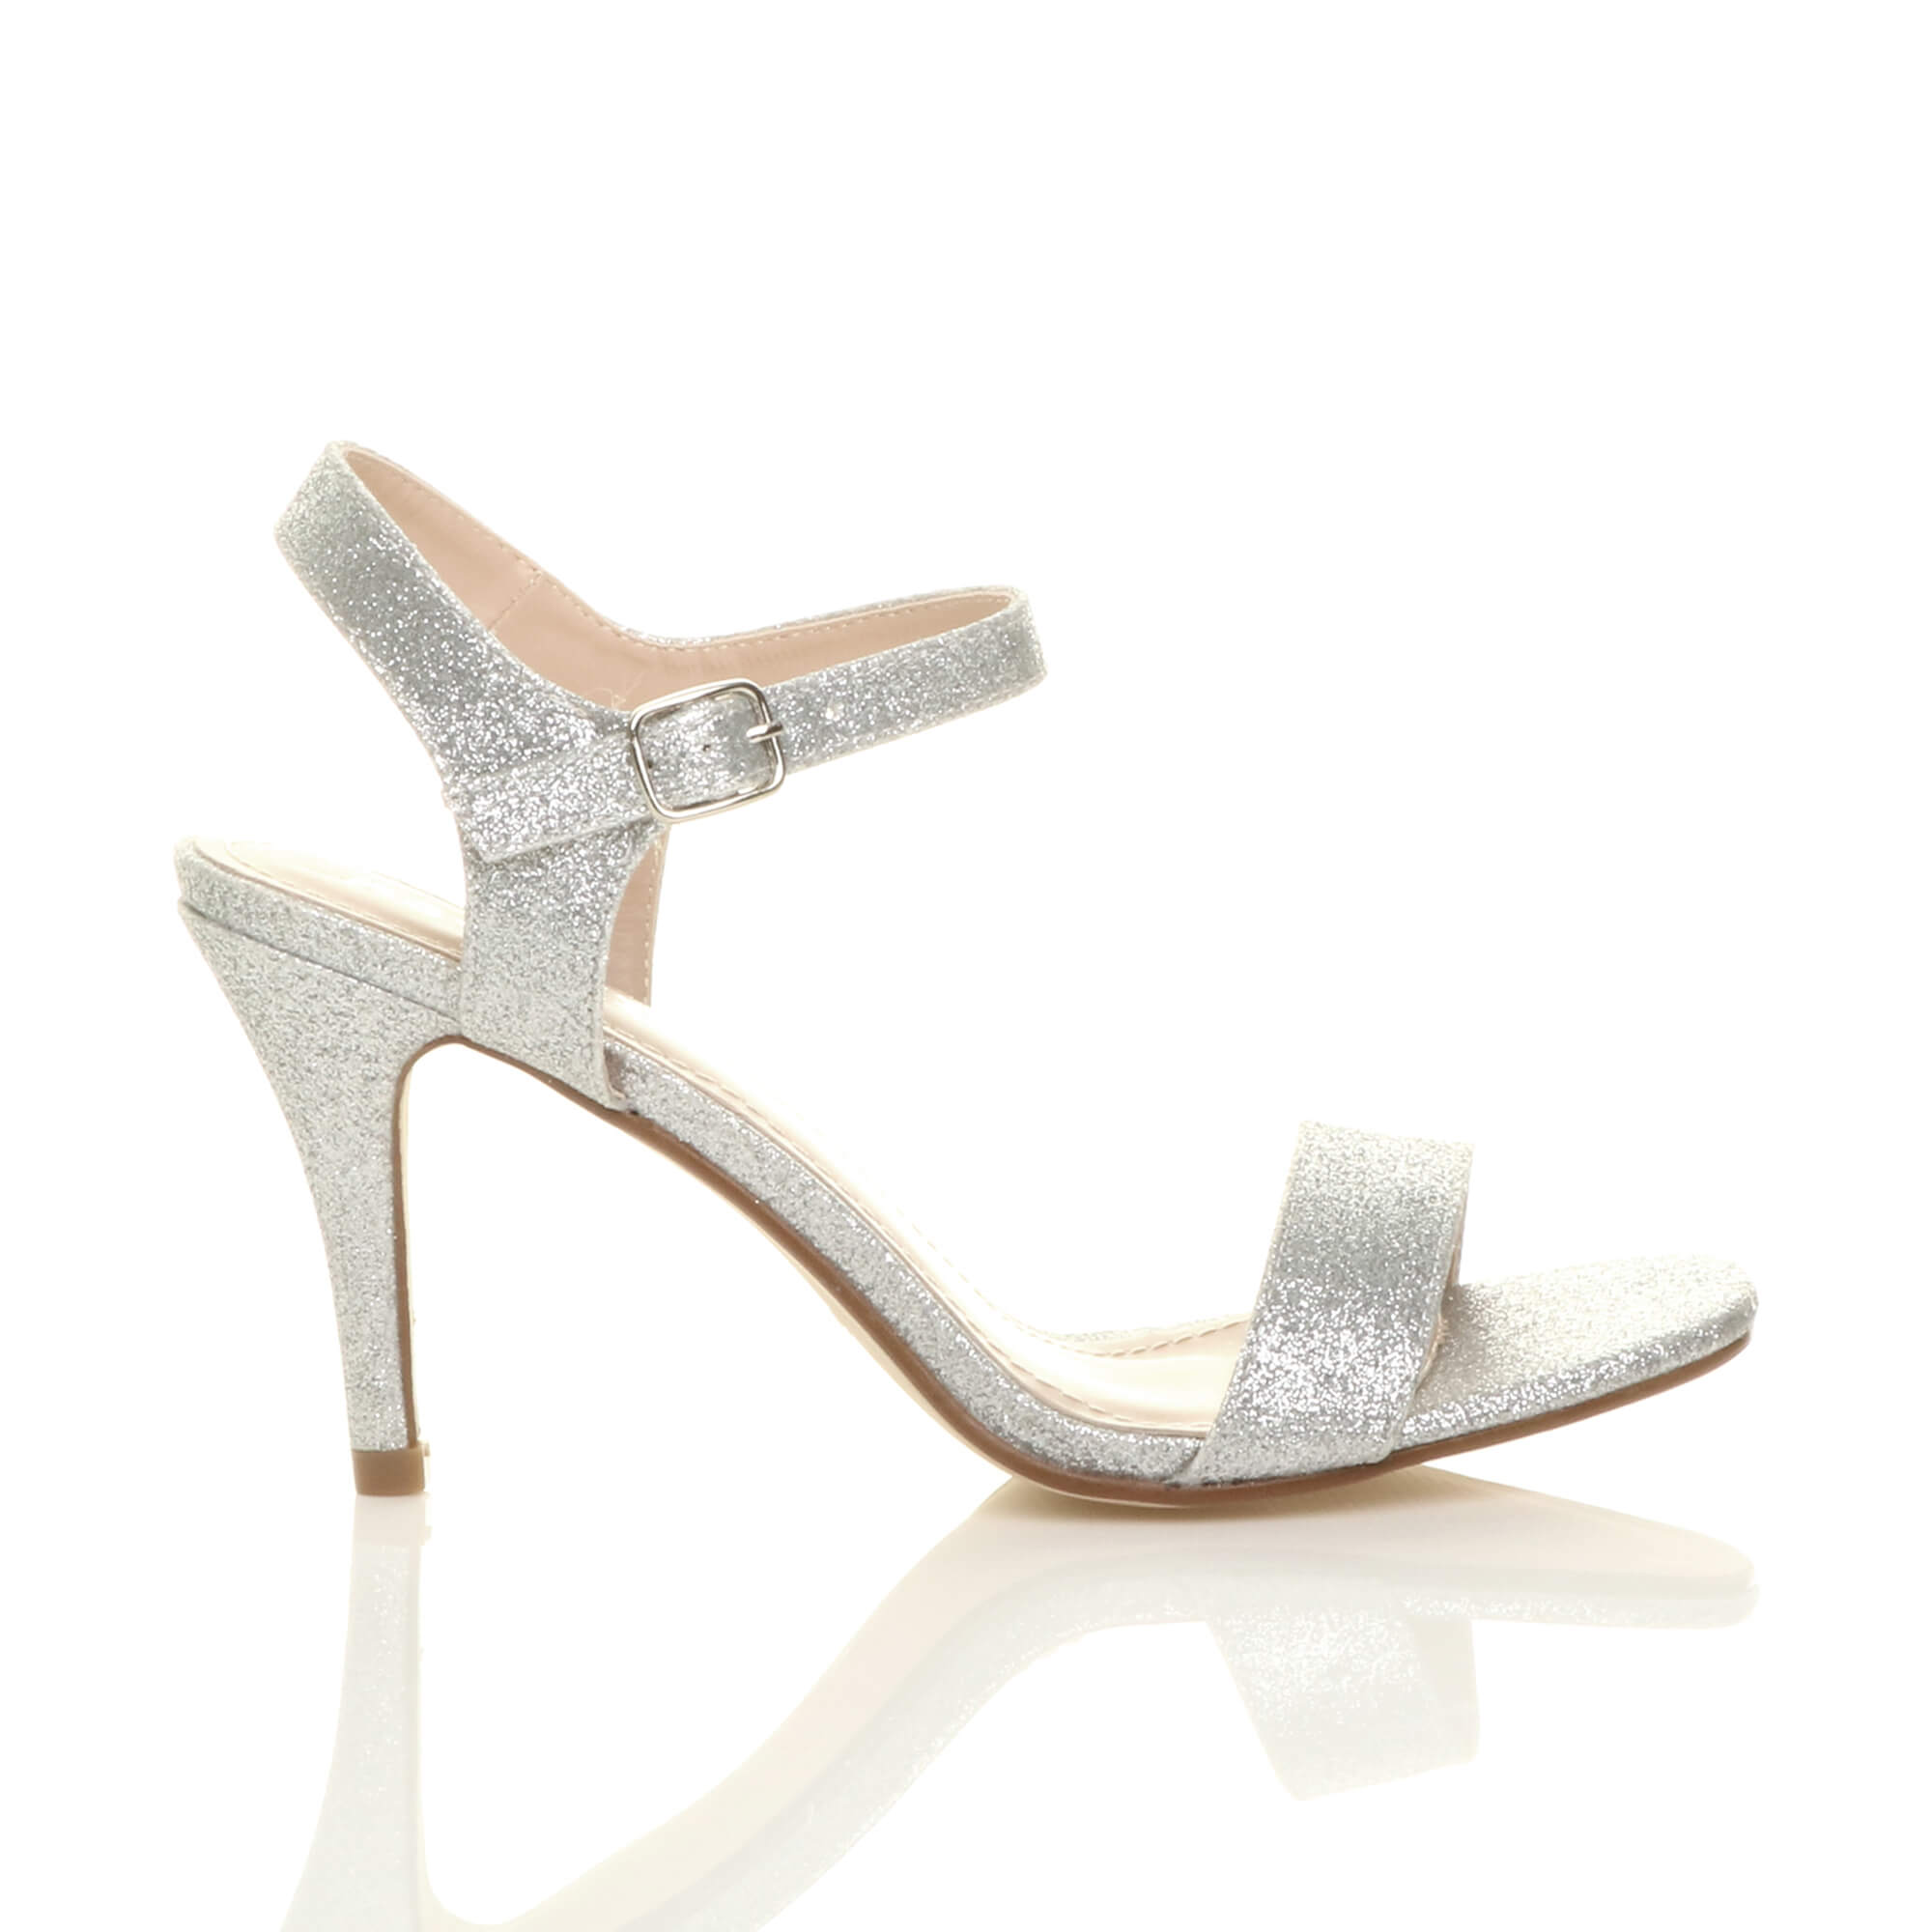 WOMENS-LADIES-HIGH-HEEL-BUCKLE-STRAPPY-BASIC-BARELY-THERE-SANDALS-SHOES-SIZE thumbnail 122